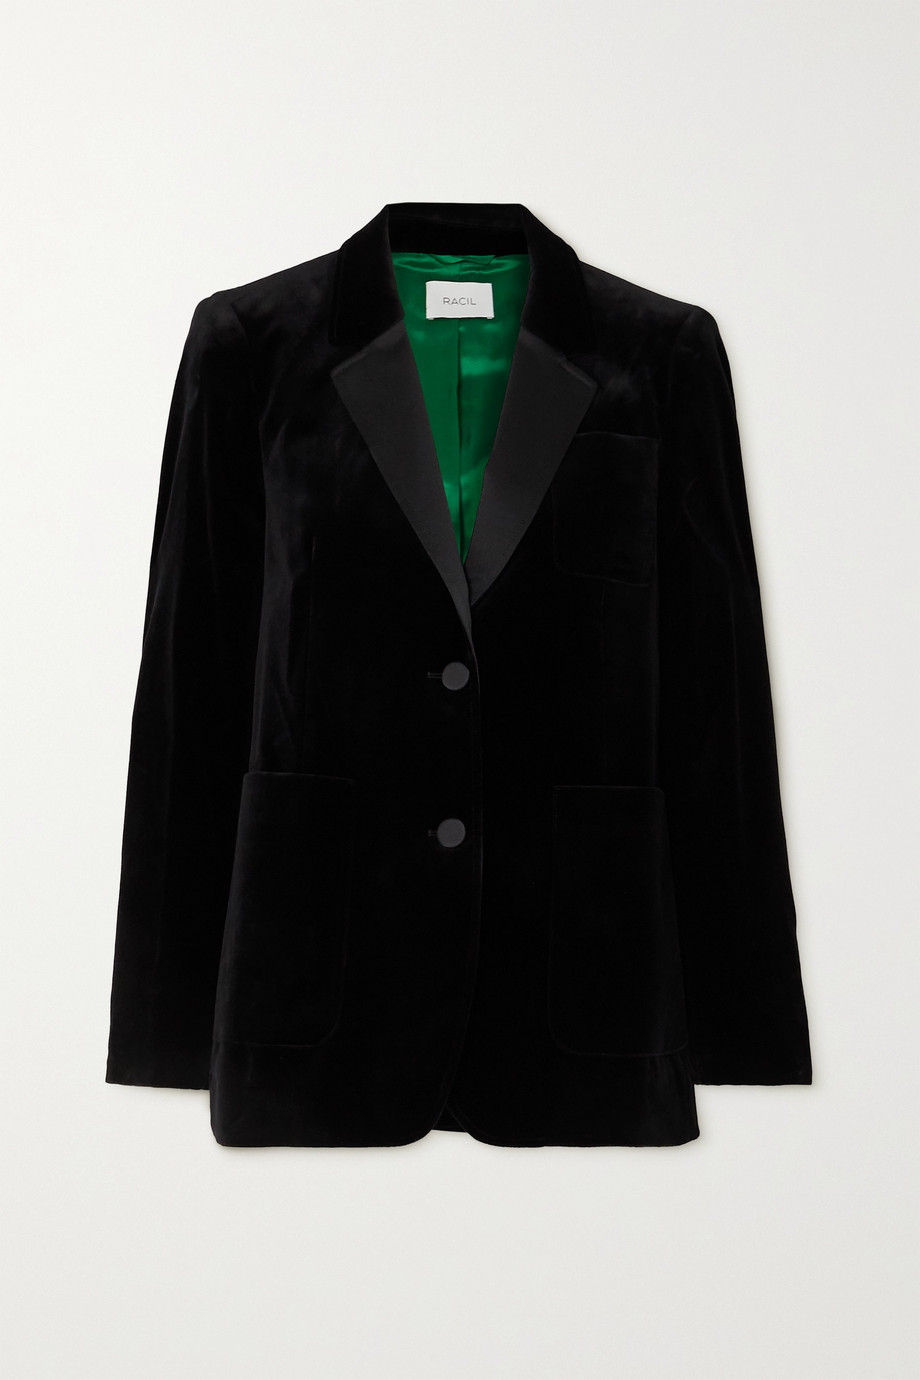 Racil Anais satin-trimmed cotton-blend velvet blazer